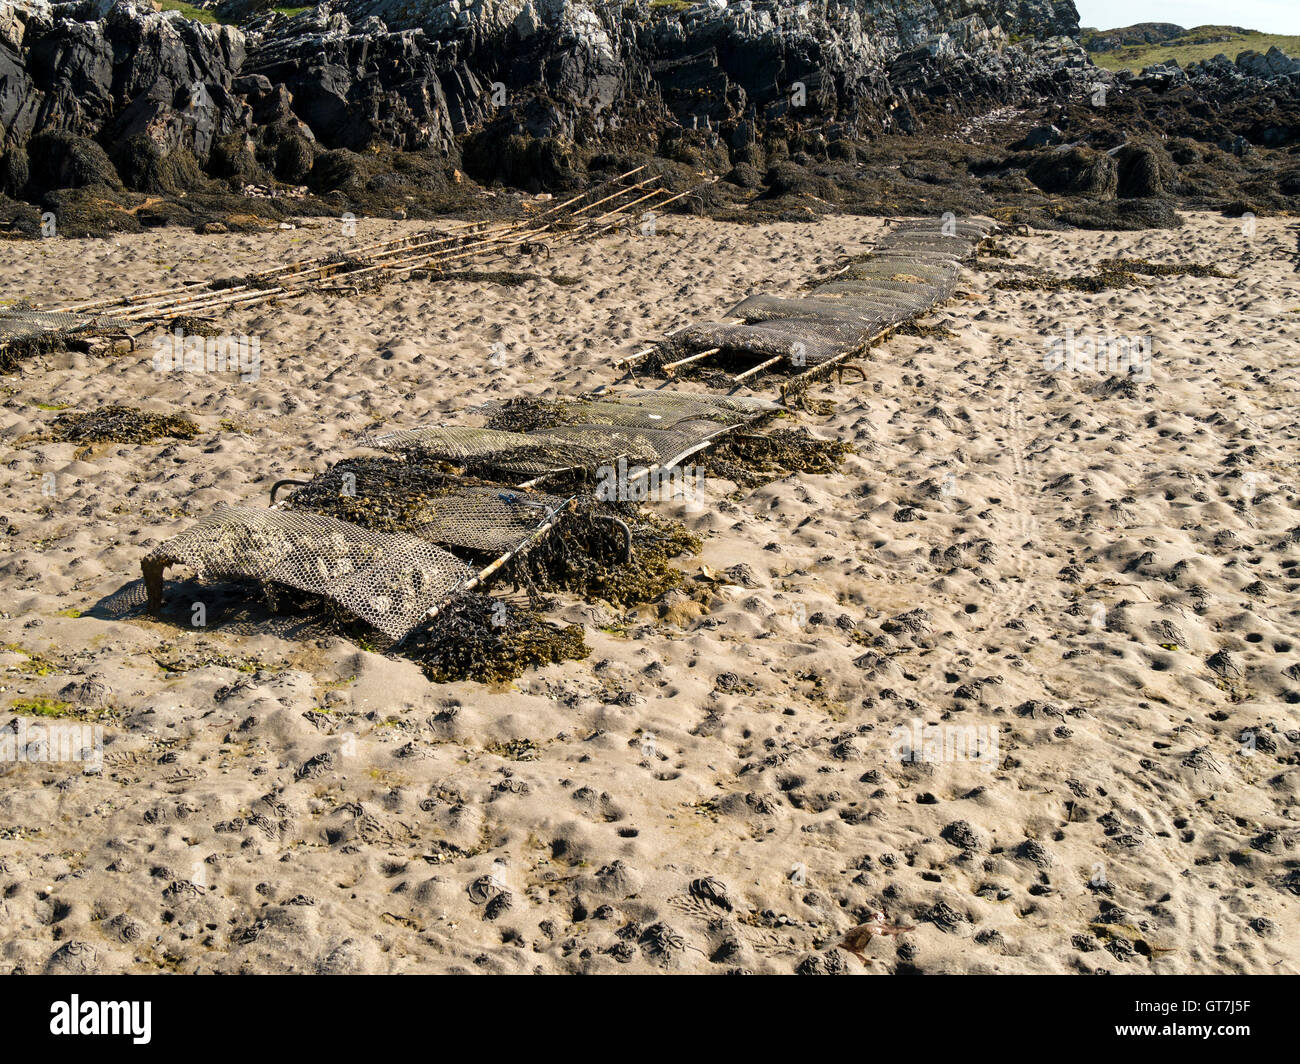 Oyster farm beds, The Strand, Isle of Colonsay, Scotland, UK. Stock Photo